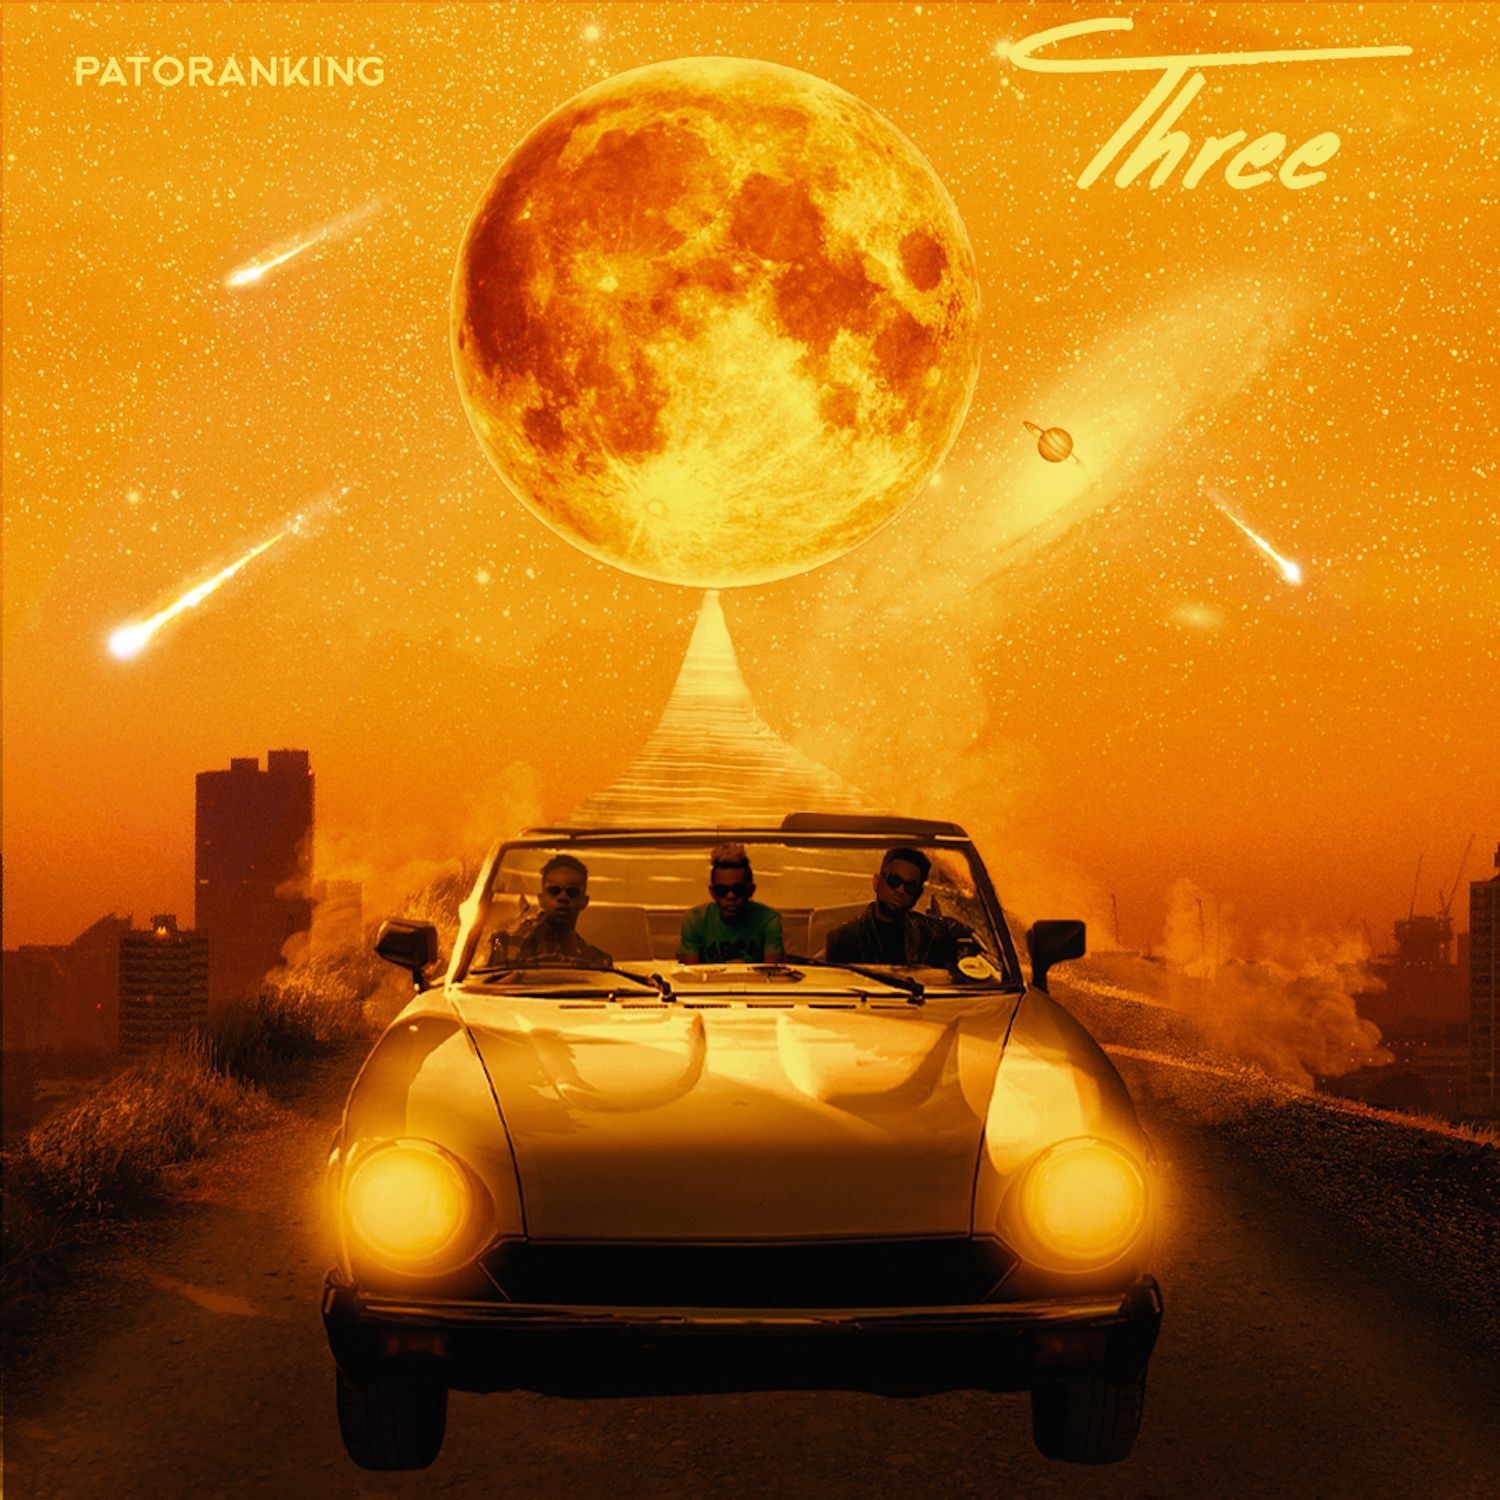 Patoranking - Three (FULL ALBUM)